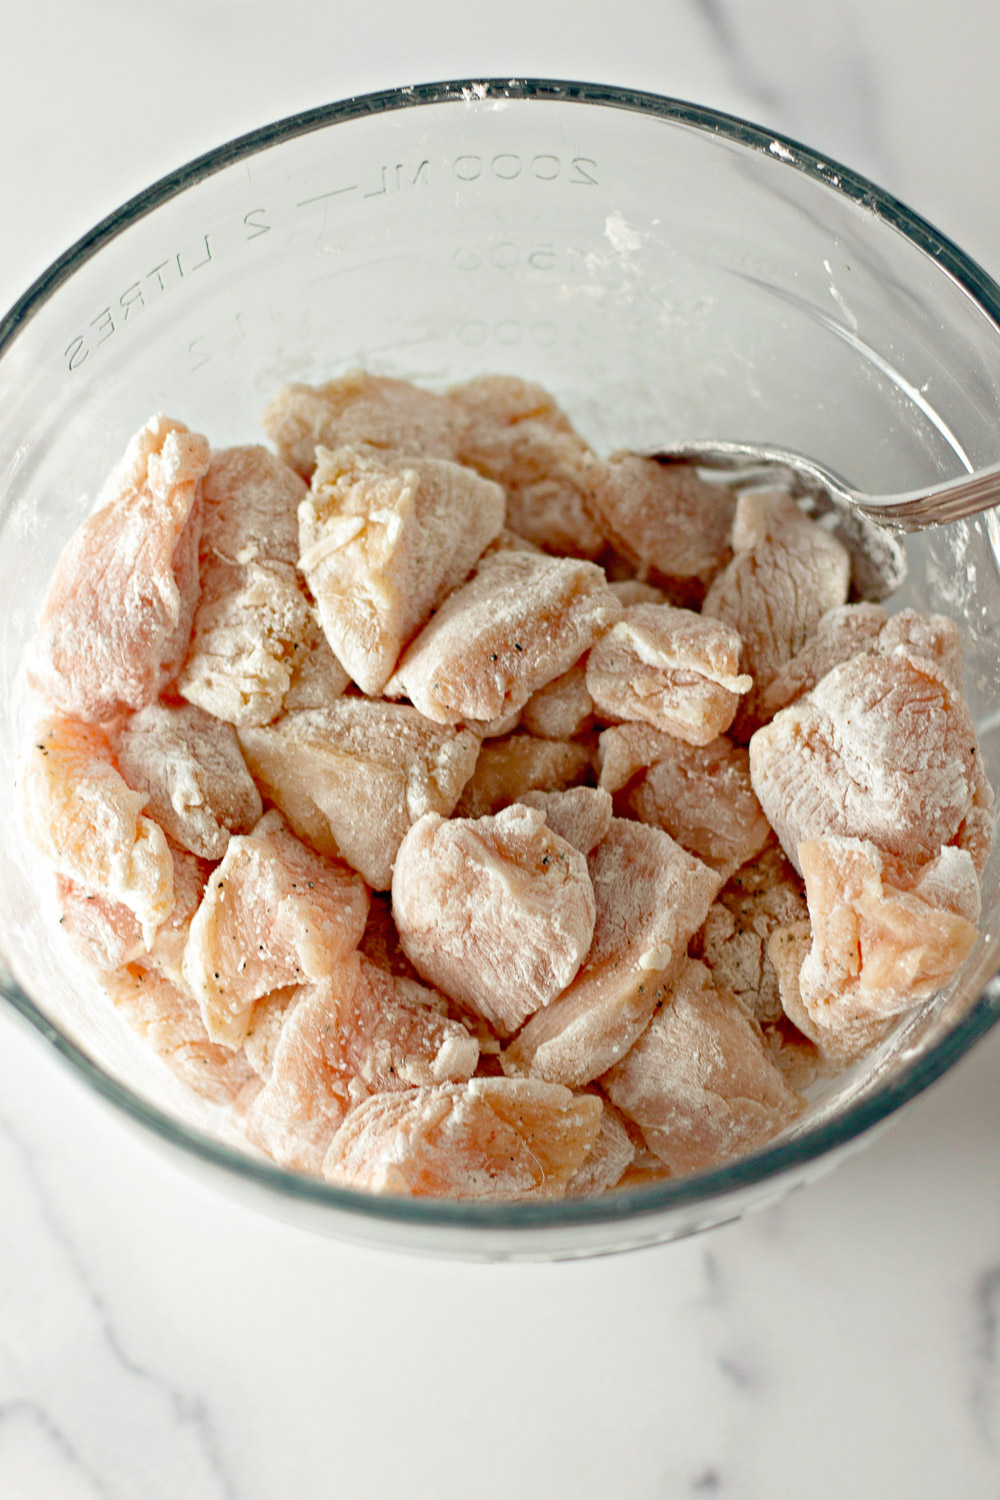 chicken breast pieces tossed with cornstarch and seasonings